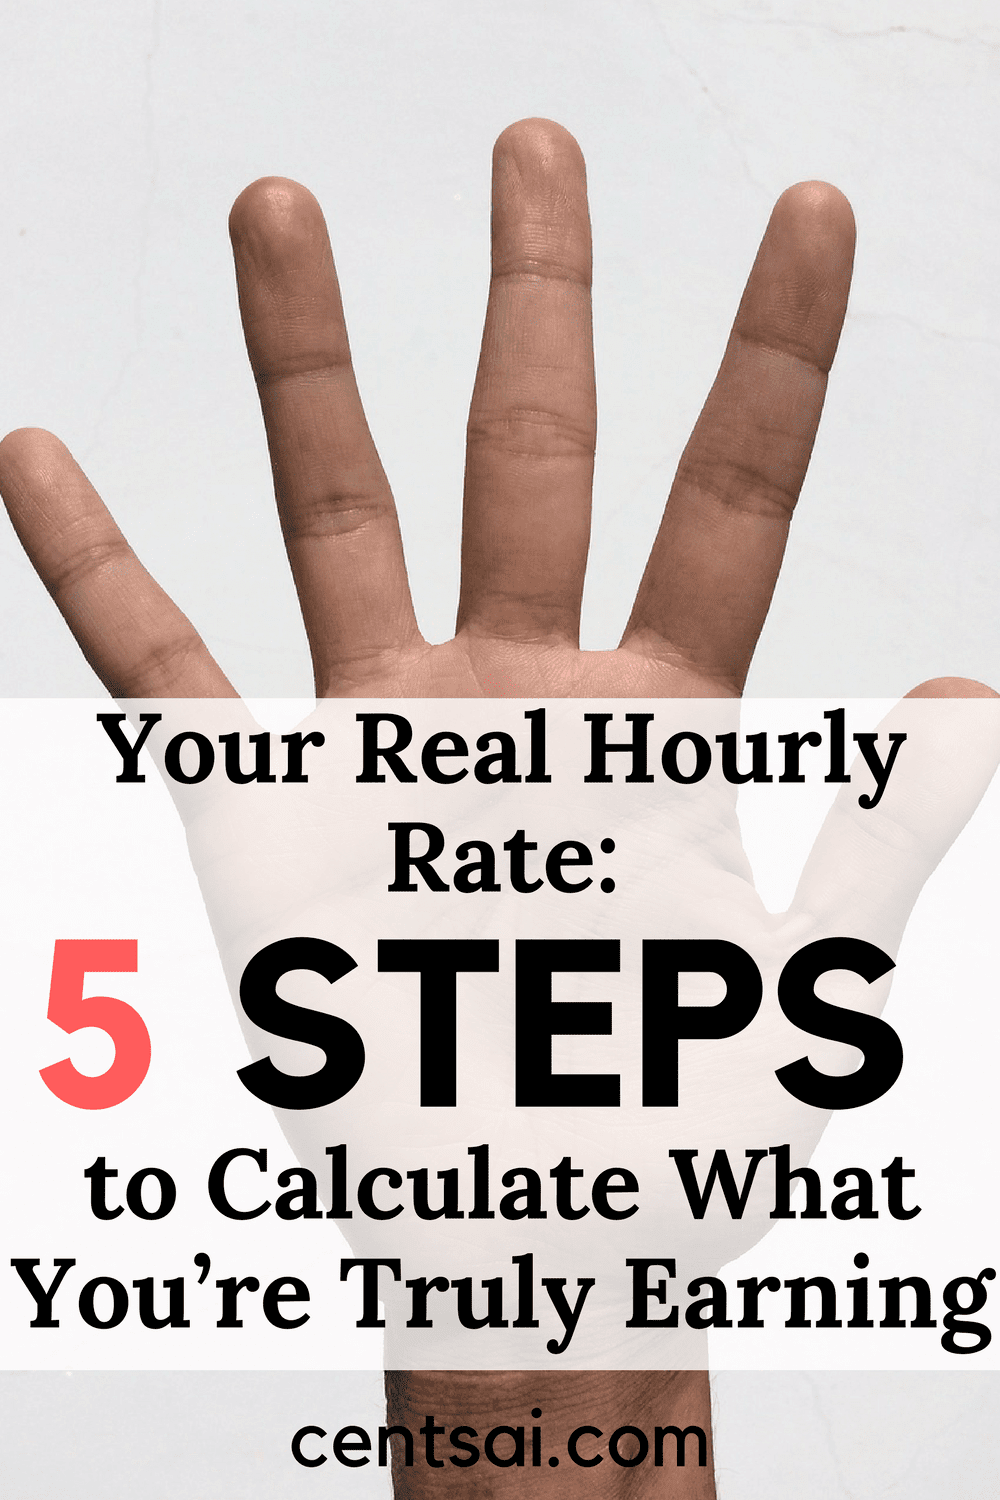 Your Real Hourly Rate 5 Steps to Calculate What You're Truly Earning